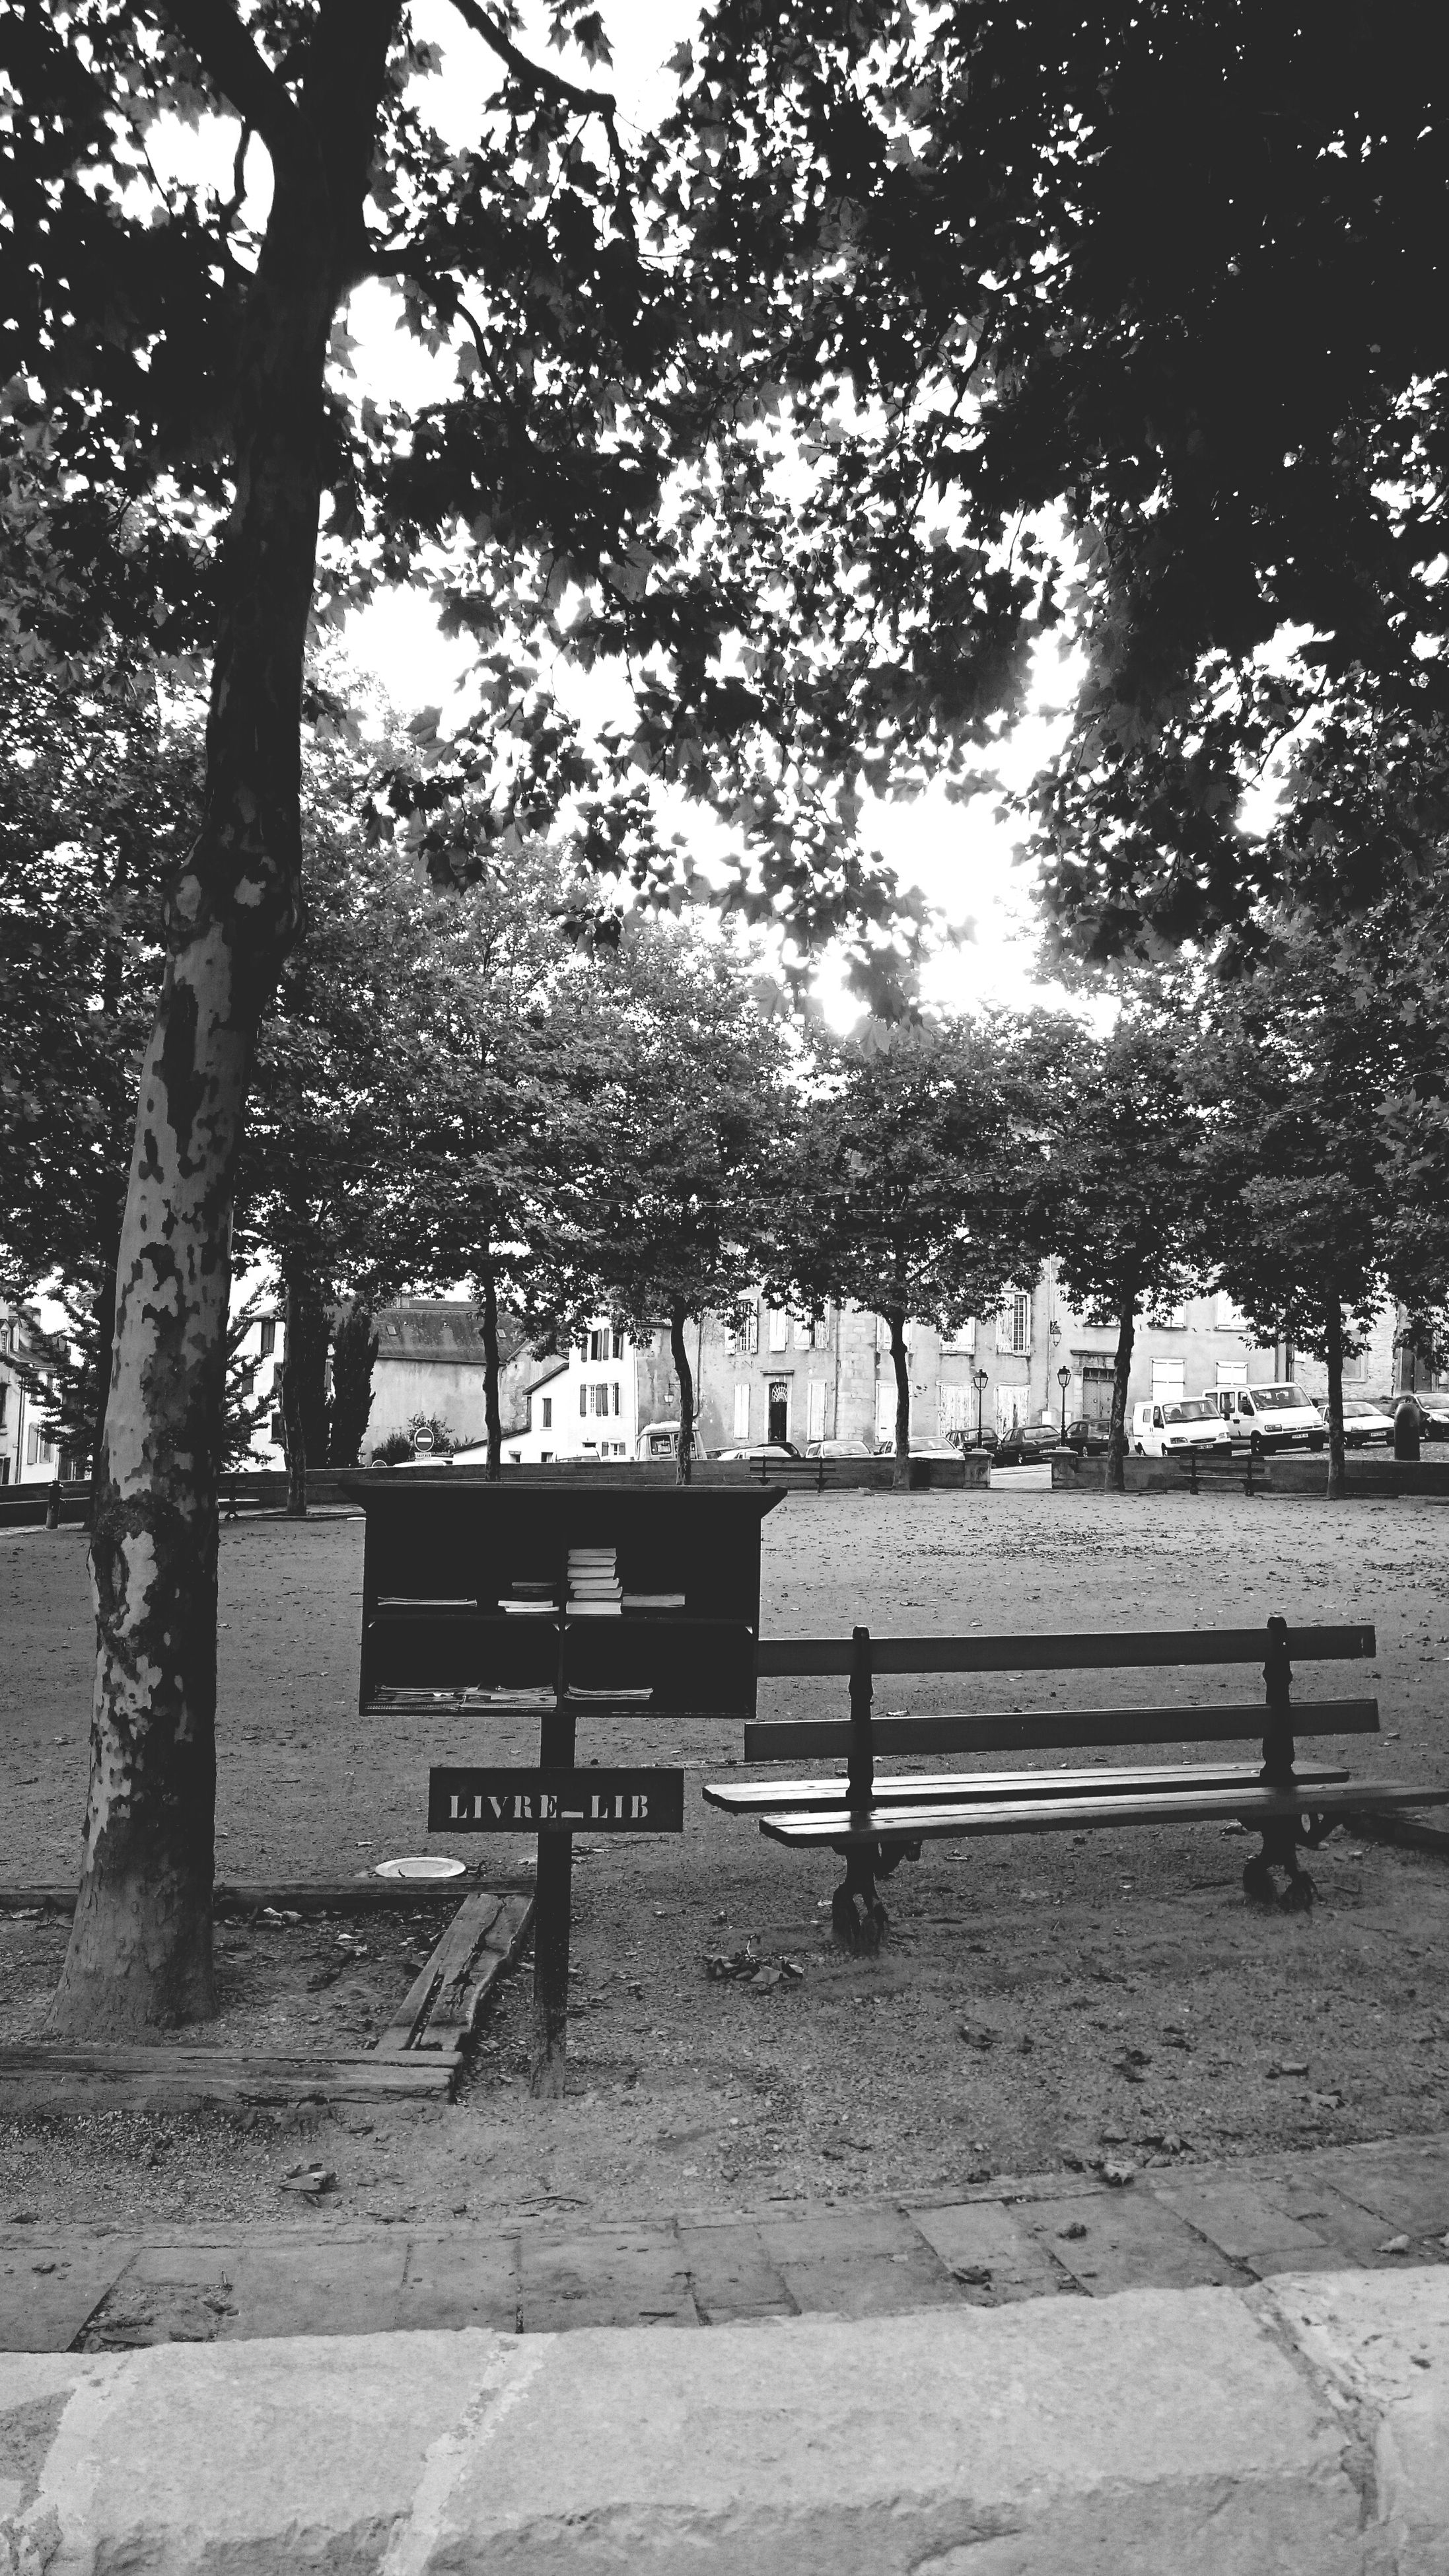 tree, bench, park - man made space, growth, empty, park bench, branch, absence, park, nature, tranquility, sunlight, day, shadow, outdoors, seat, footpath, railing, sidewalk, no people